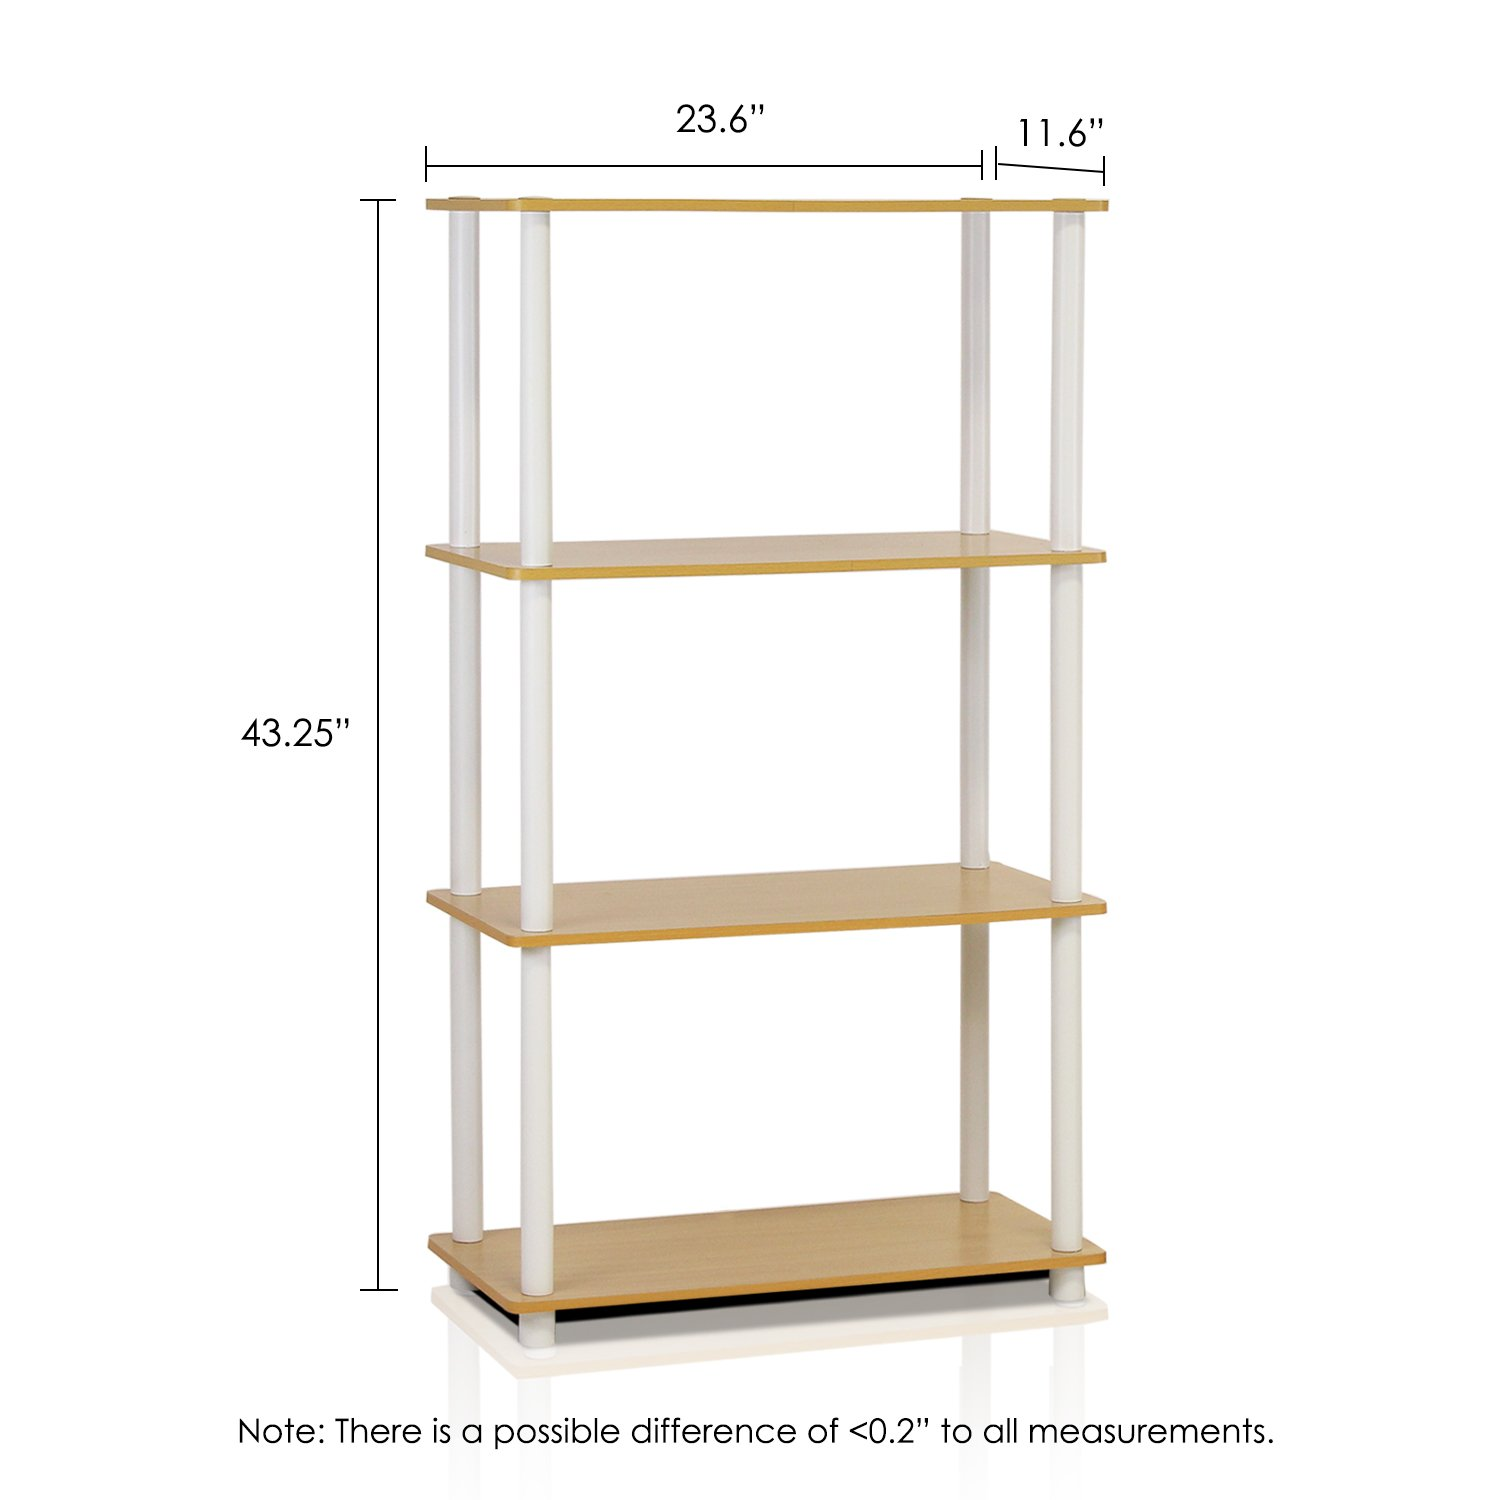 Furinno (99557BE/WH) Turn-N-Tube 4-Tier Multipurpose Shelf Display Rack - Beech/White by Furinno (Image #2)